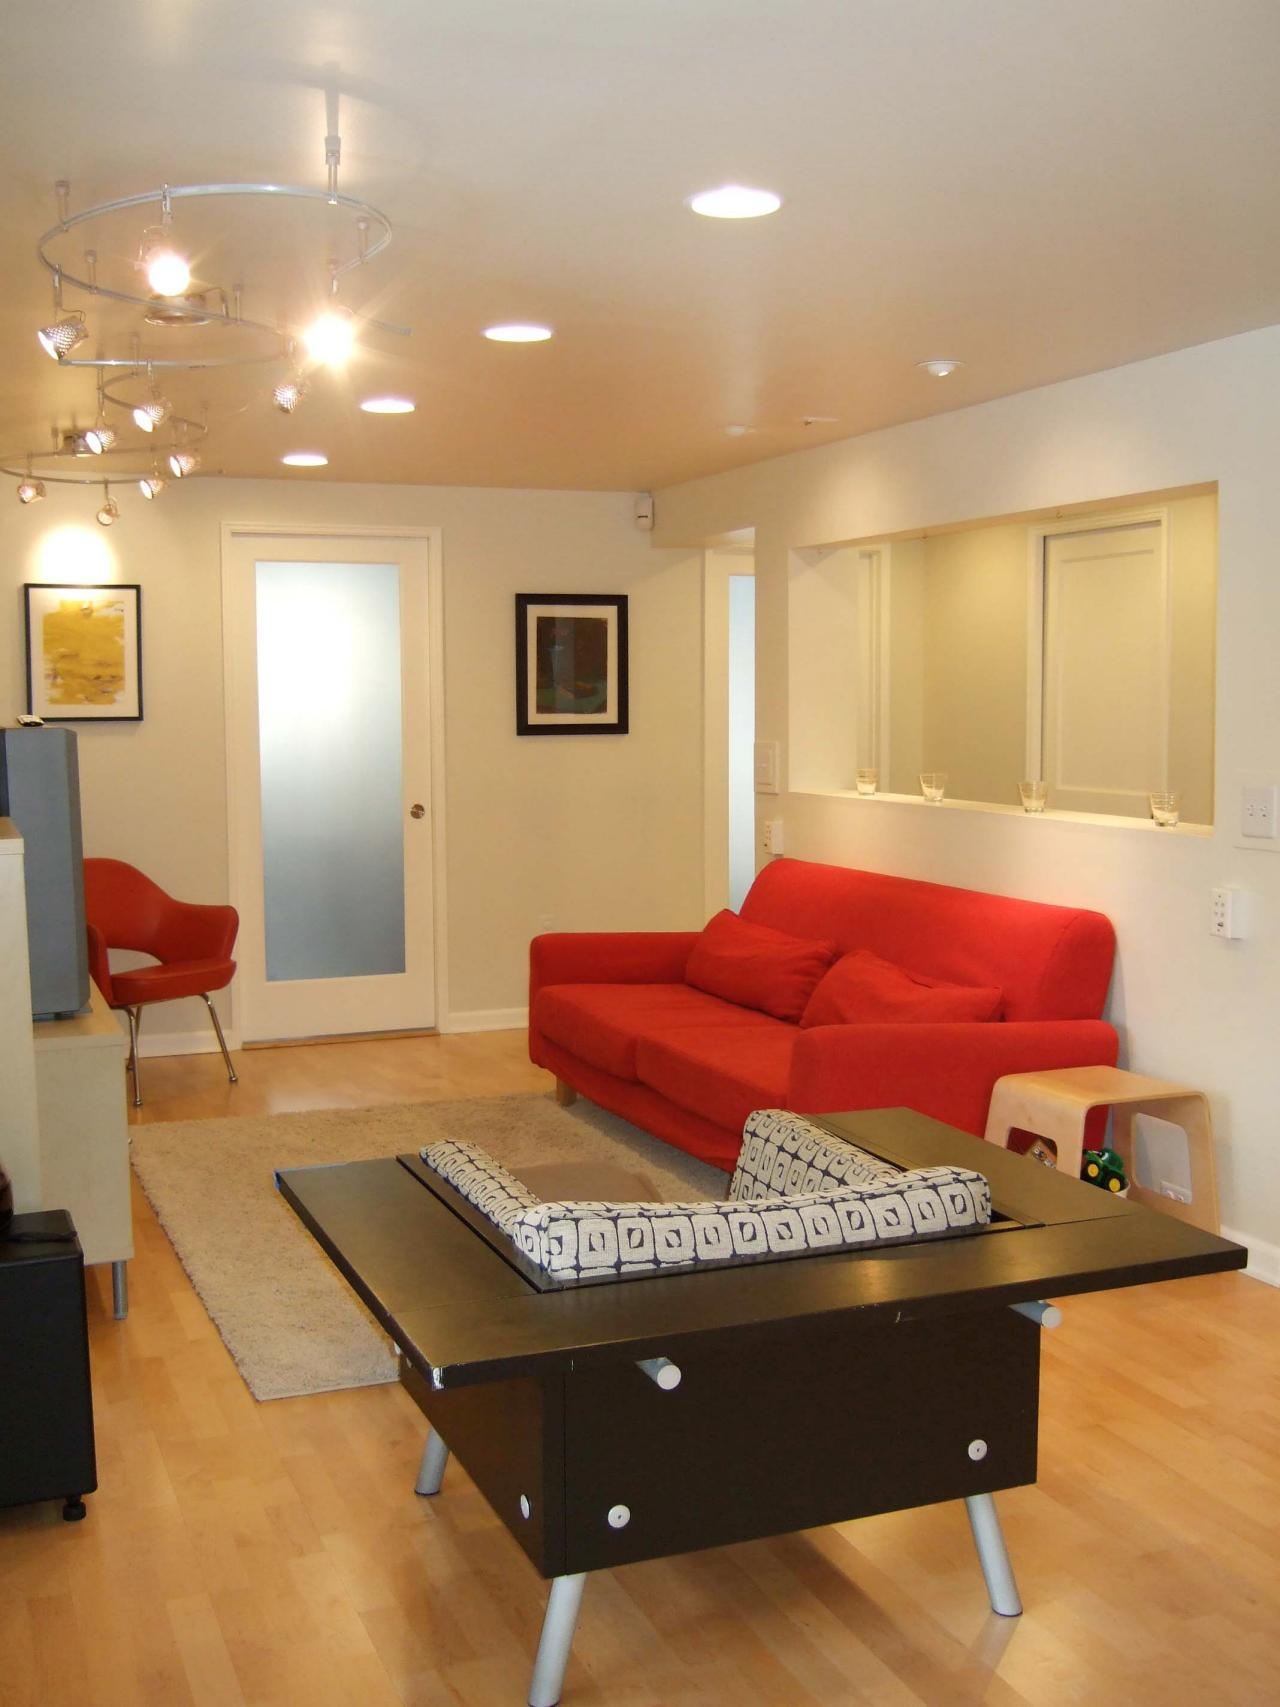 Average Cost Of Furniture For A House Basement Finishing Costs Hgtv